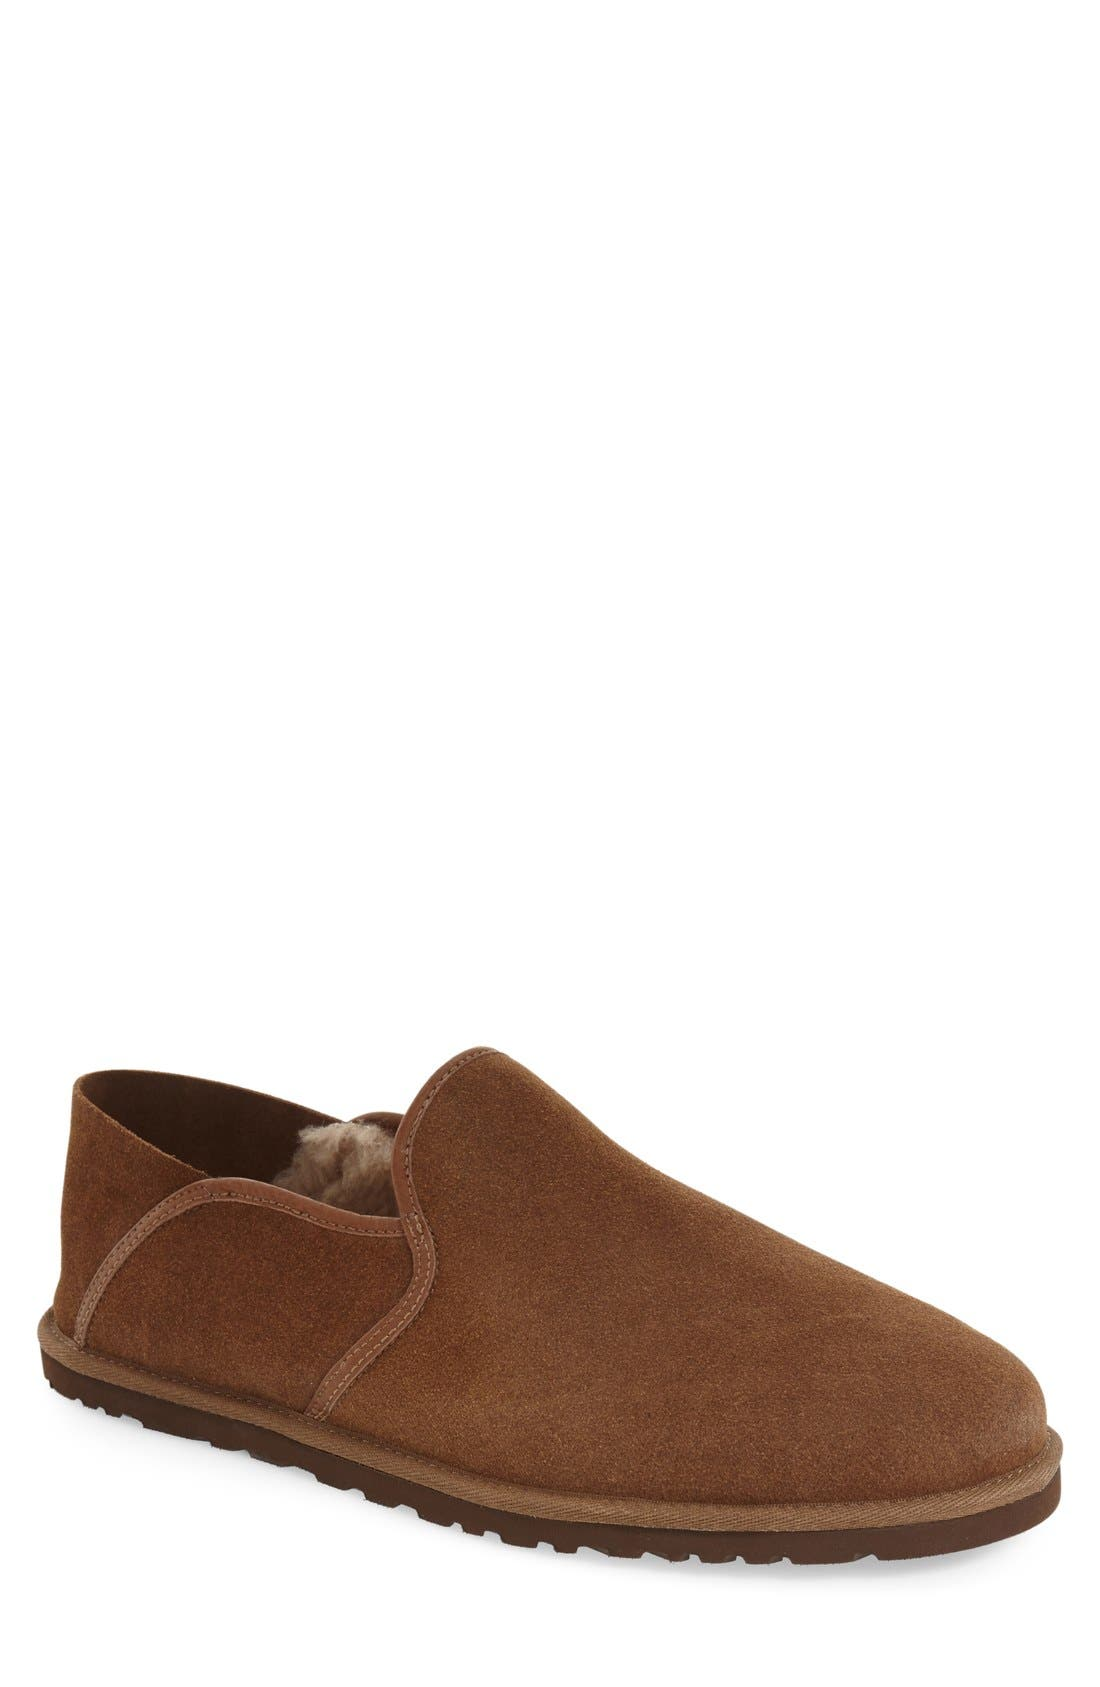 Main Image - UGG® Cooke Slipper (Men)